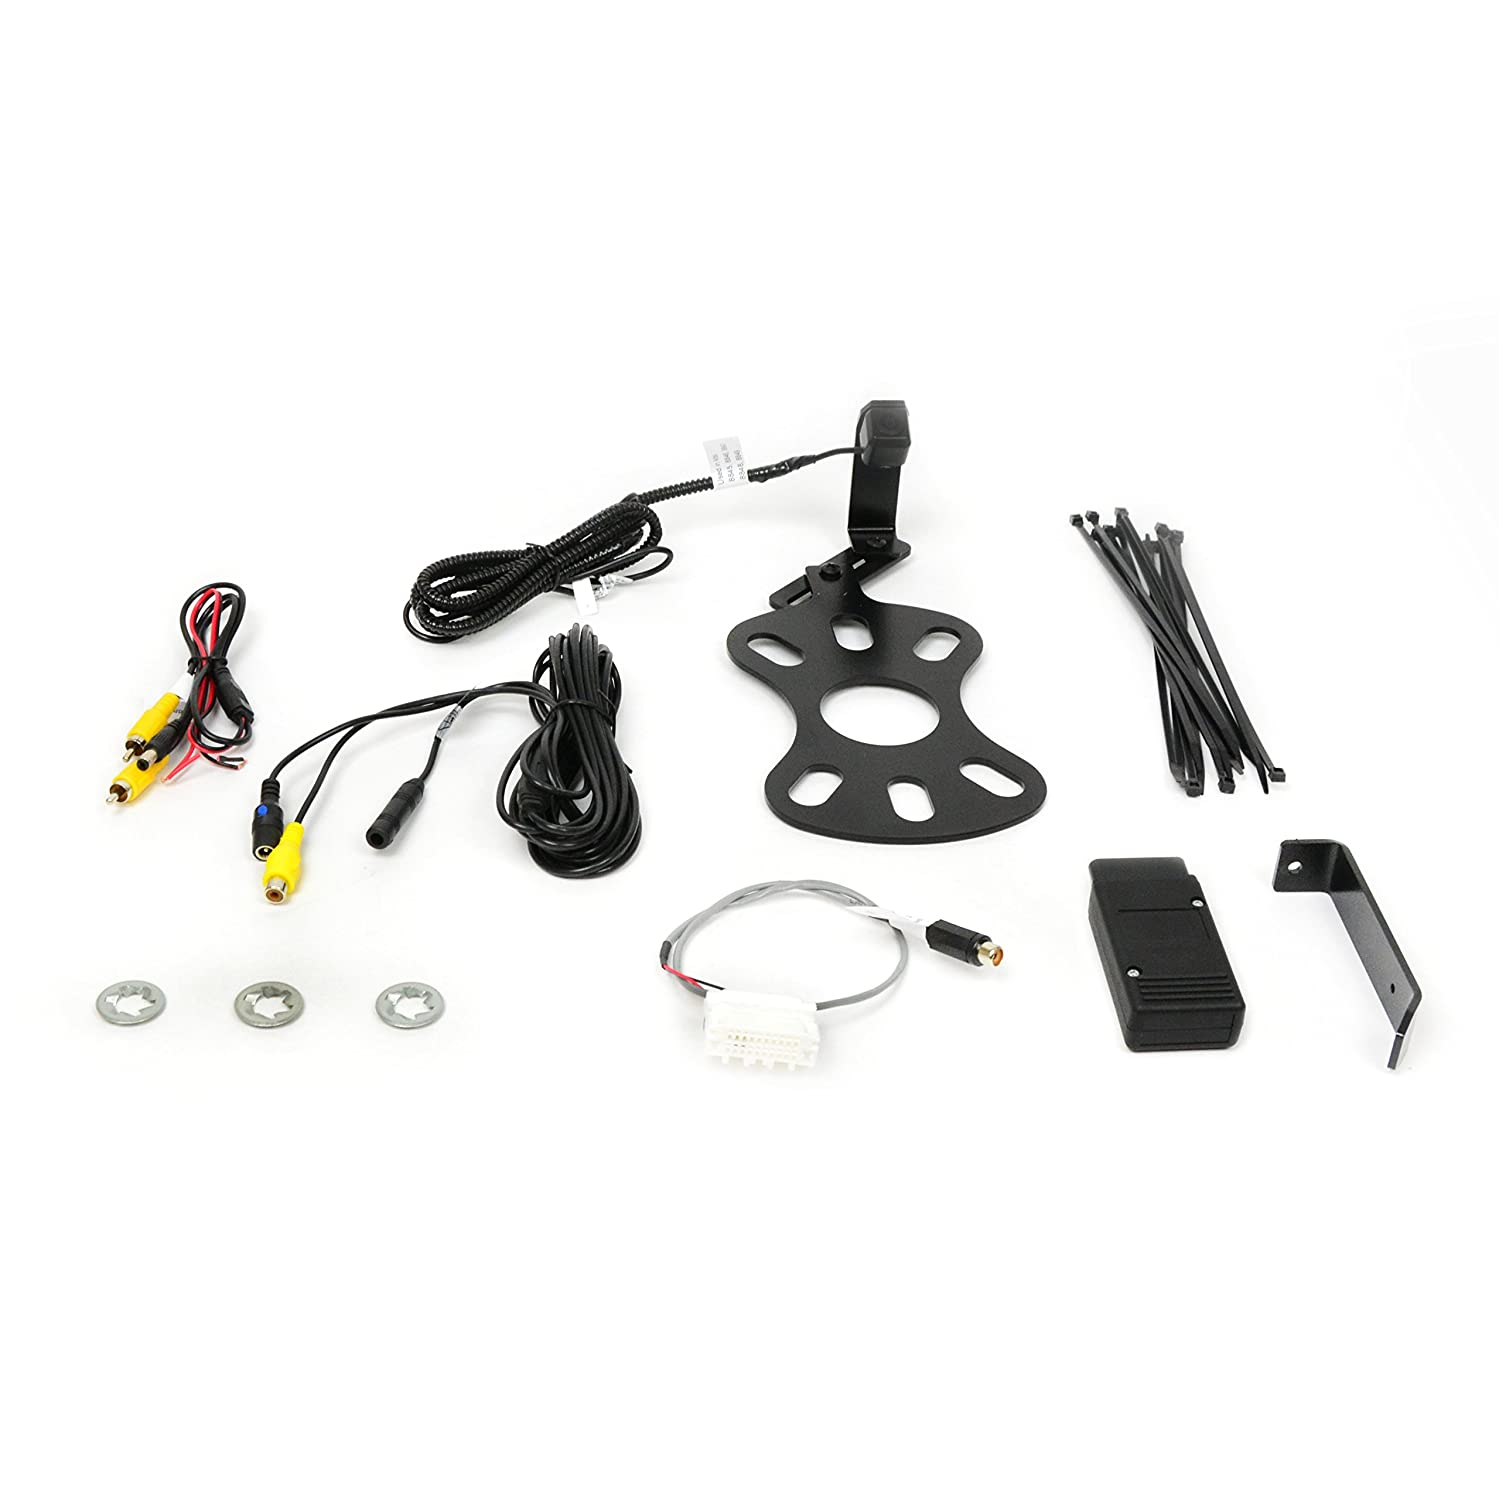 Brandmotion 9002-8847 Jeep Wrangler Adjustable Rear Vision System for Factory Display Radios 2007-Current